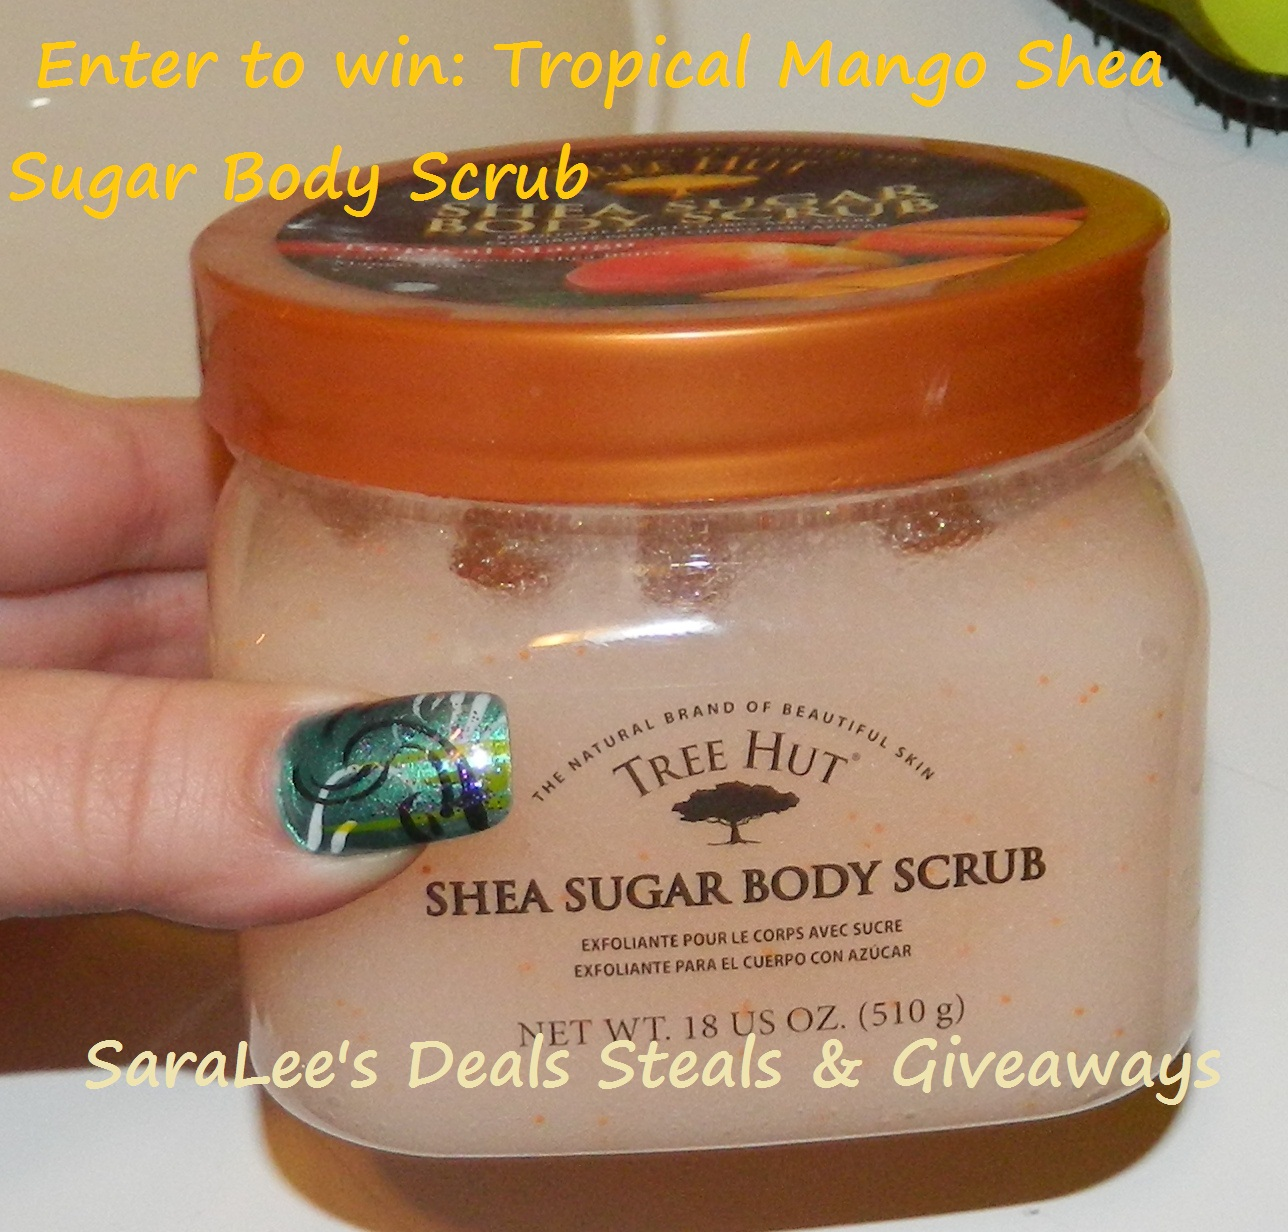 Mango Shea Sugar Body Scrub Giveaway